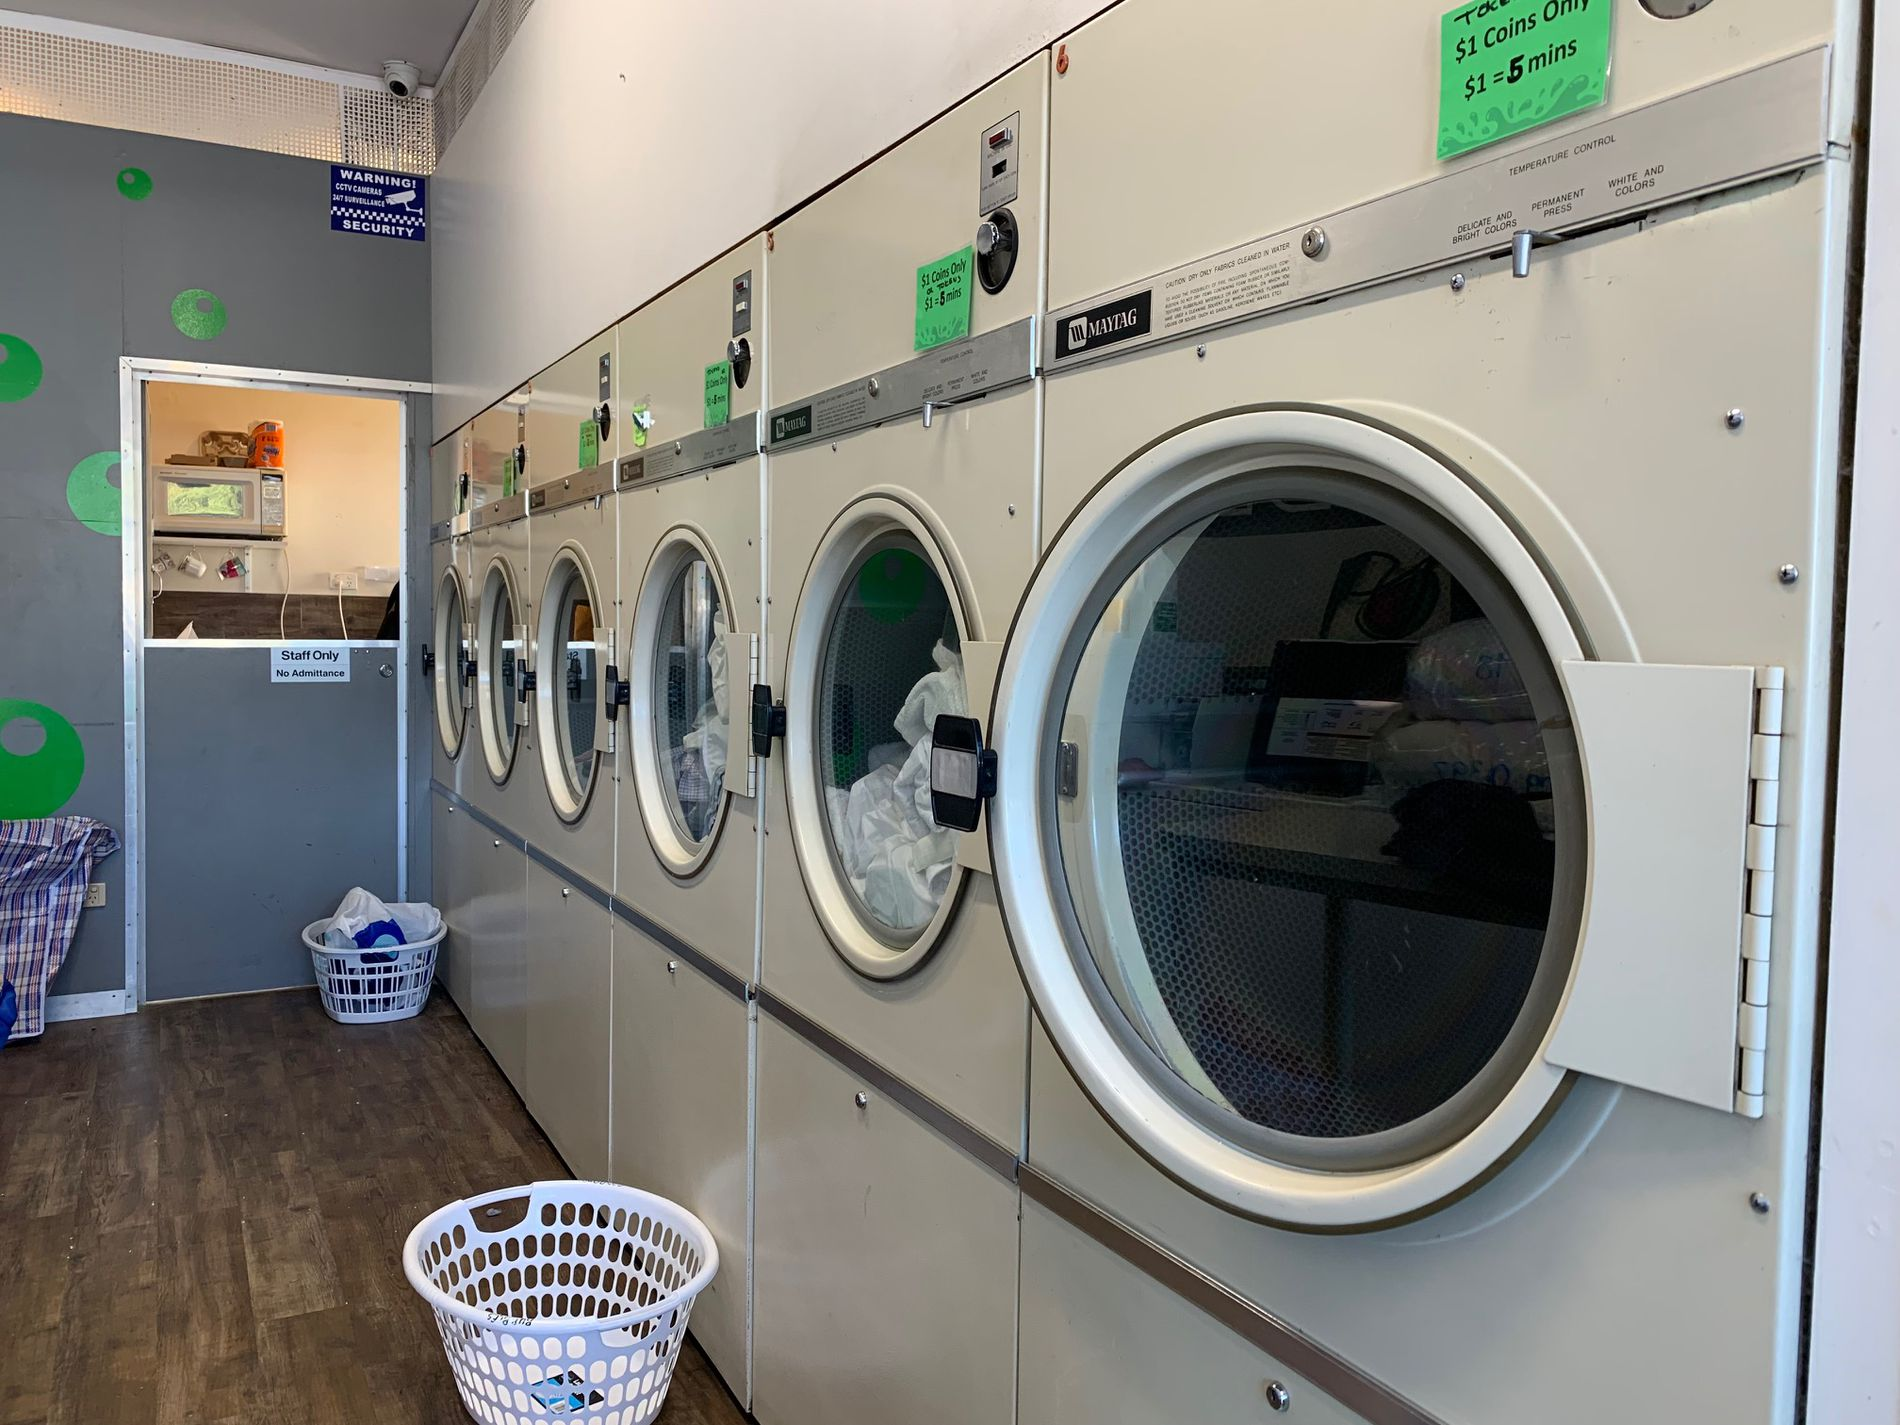 Under offer - Coin Laundry for Sale